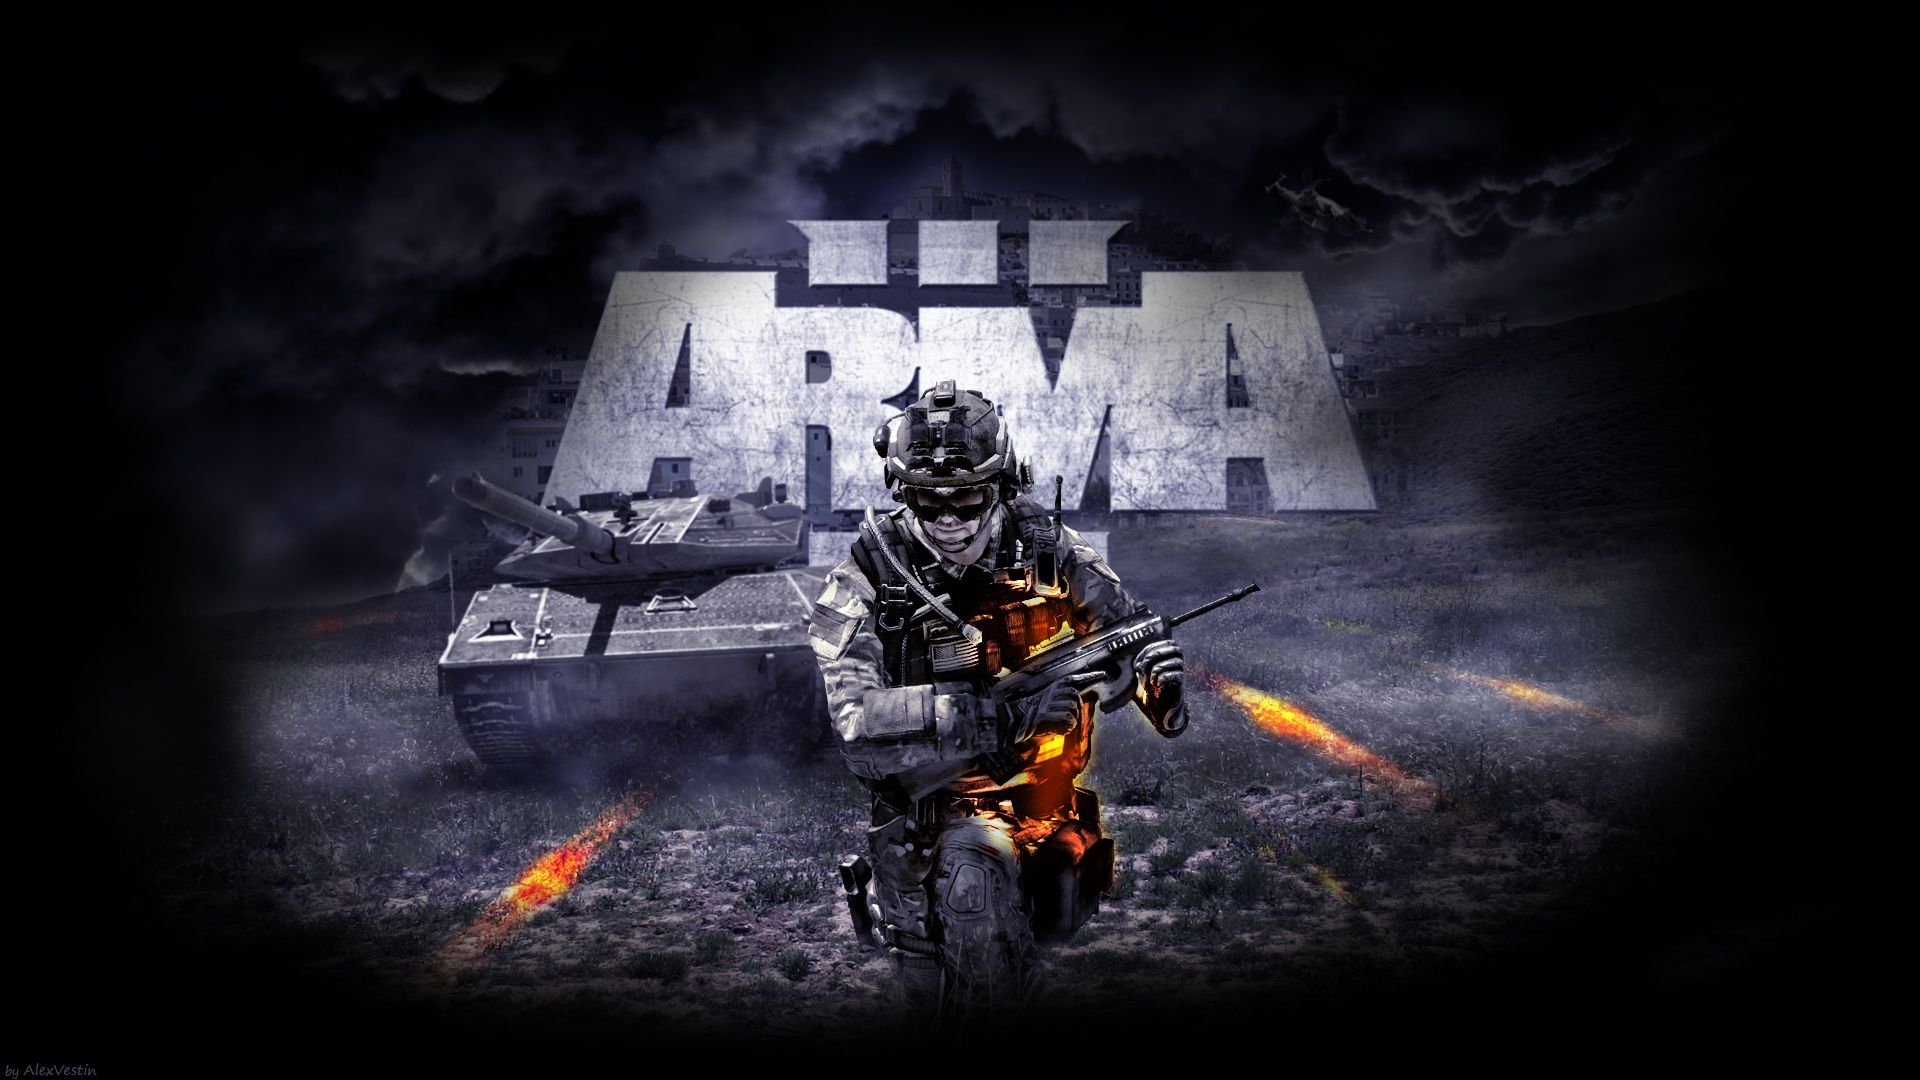 Cool Arma 3 Wallpaper